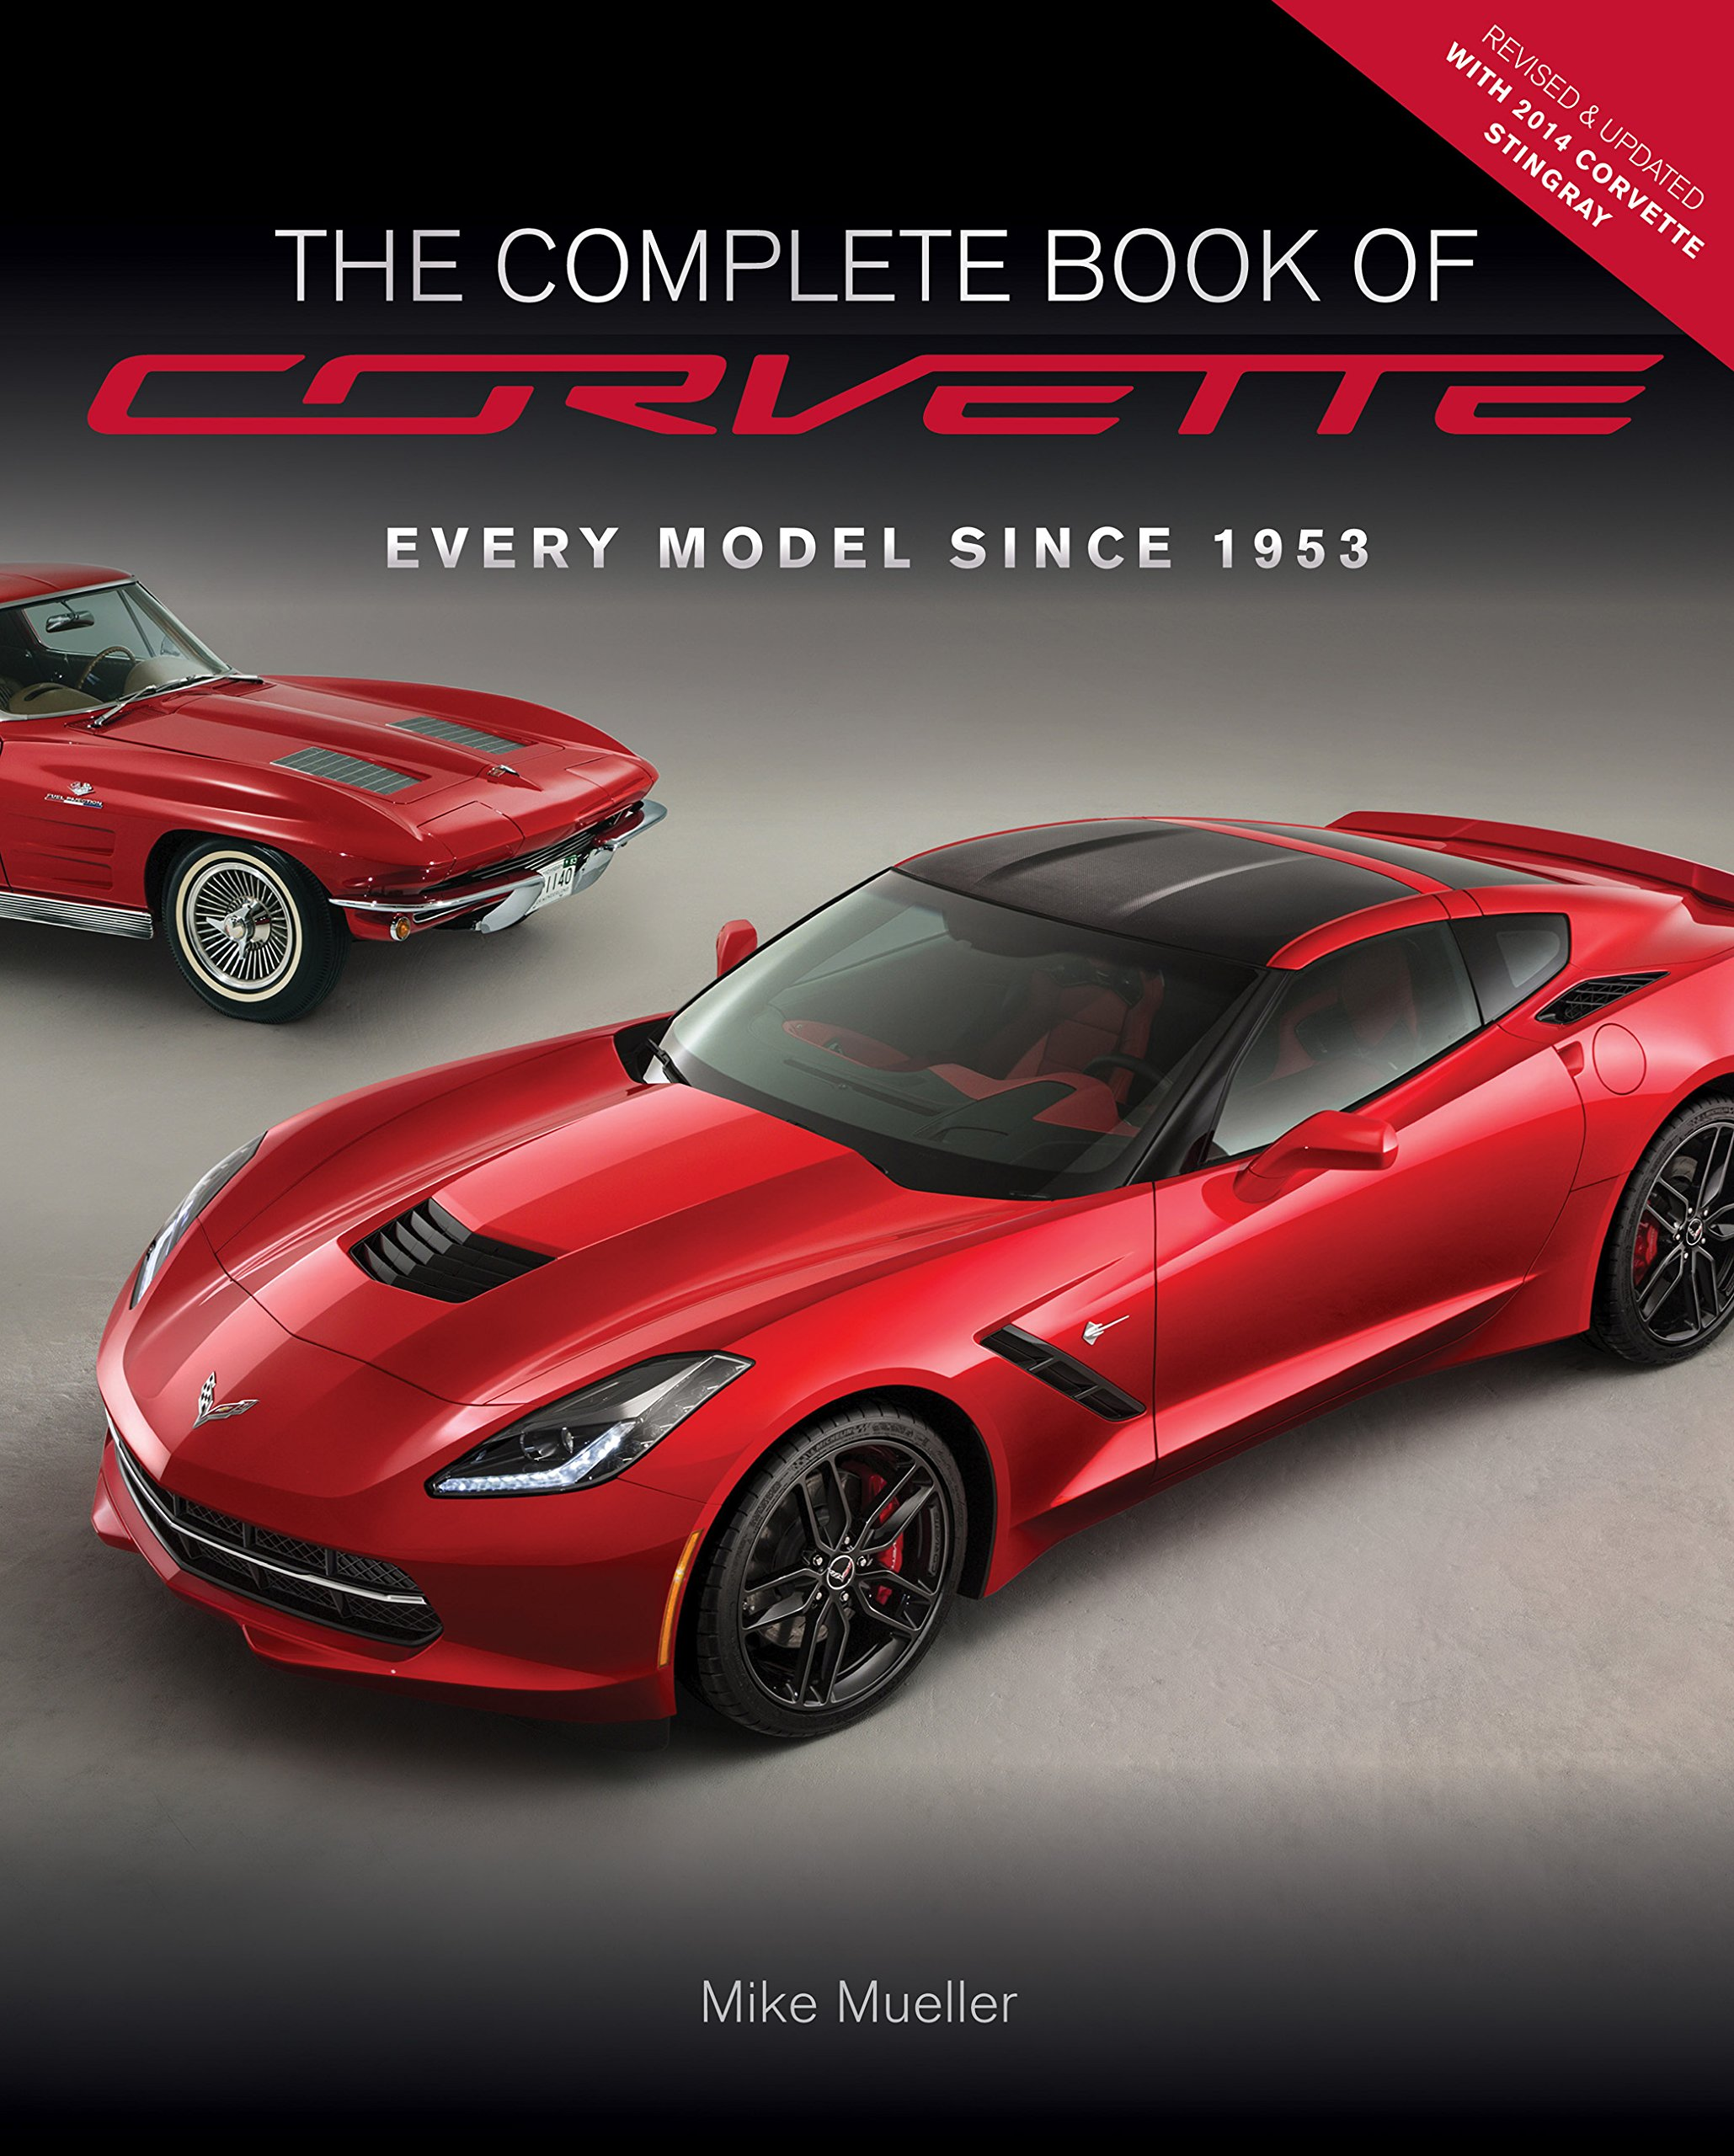 The Complete Book of Corvette - Revised & Updated: Every Model Since 1953 (Complete Book Series) by imusti